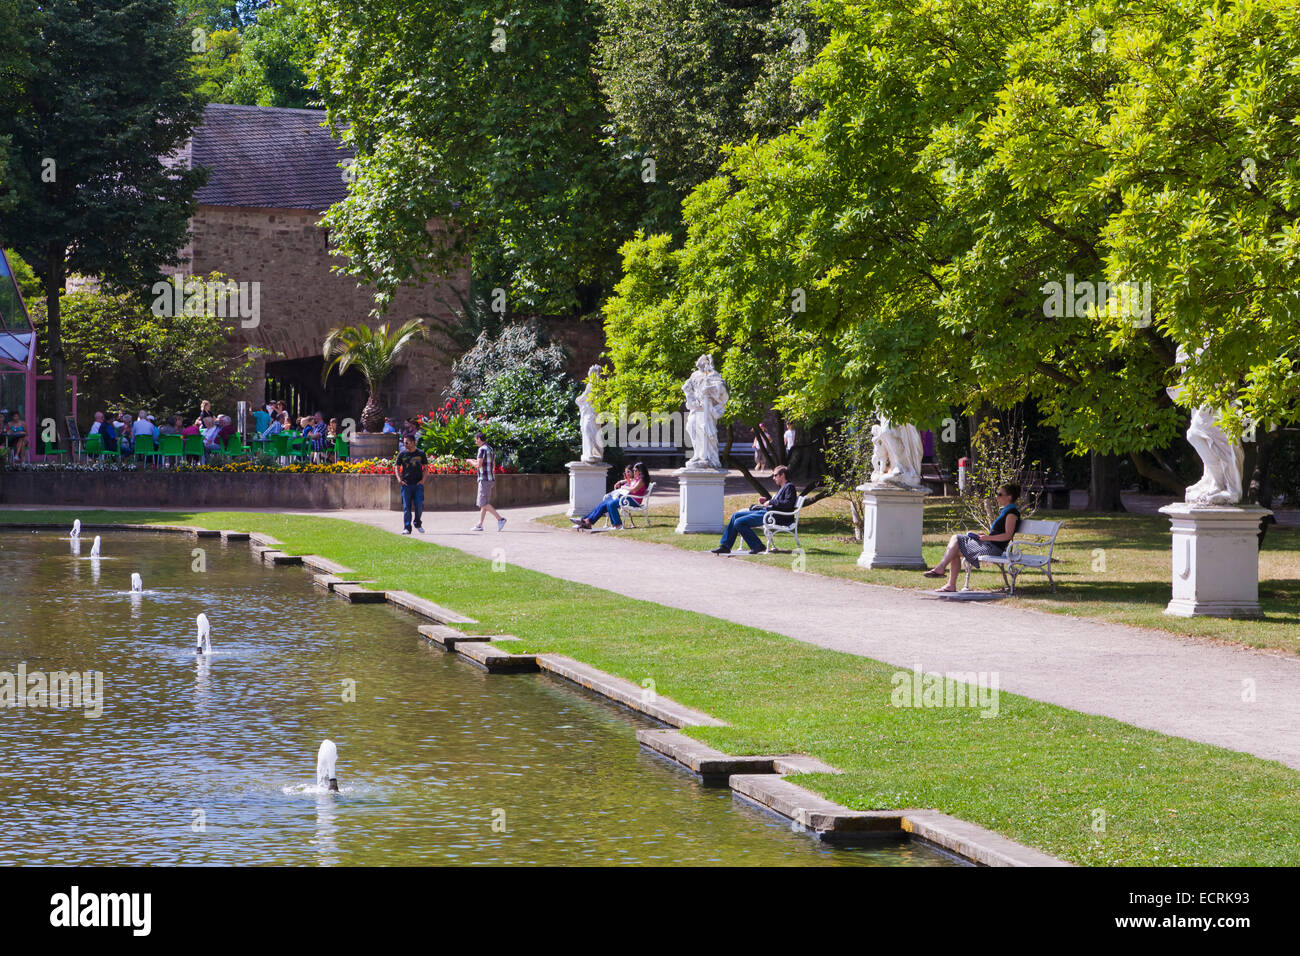 PARK OF THE ELECTORAL PALACE, KURFUERSTLICHES PALAIS, TRIER, TREVES, RHINELAND-PALATINATE, GERMANY Stock Photo